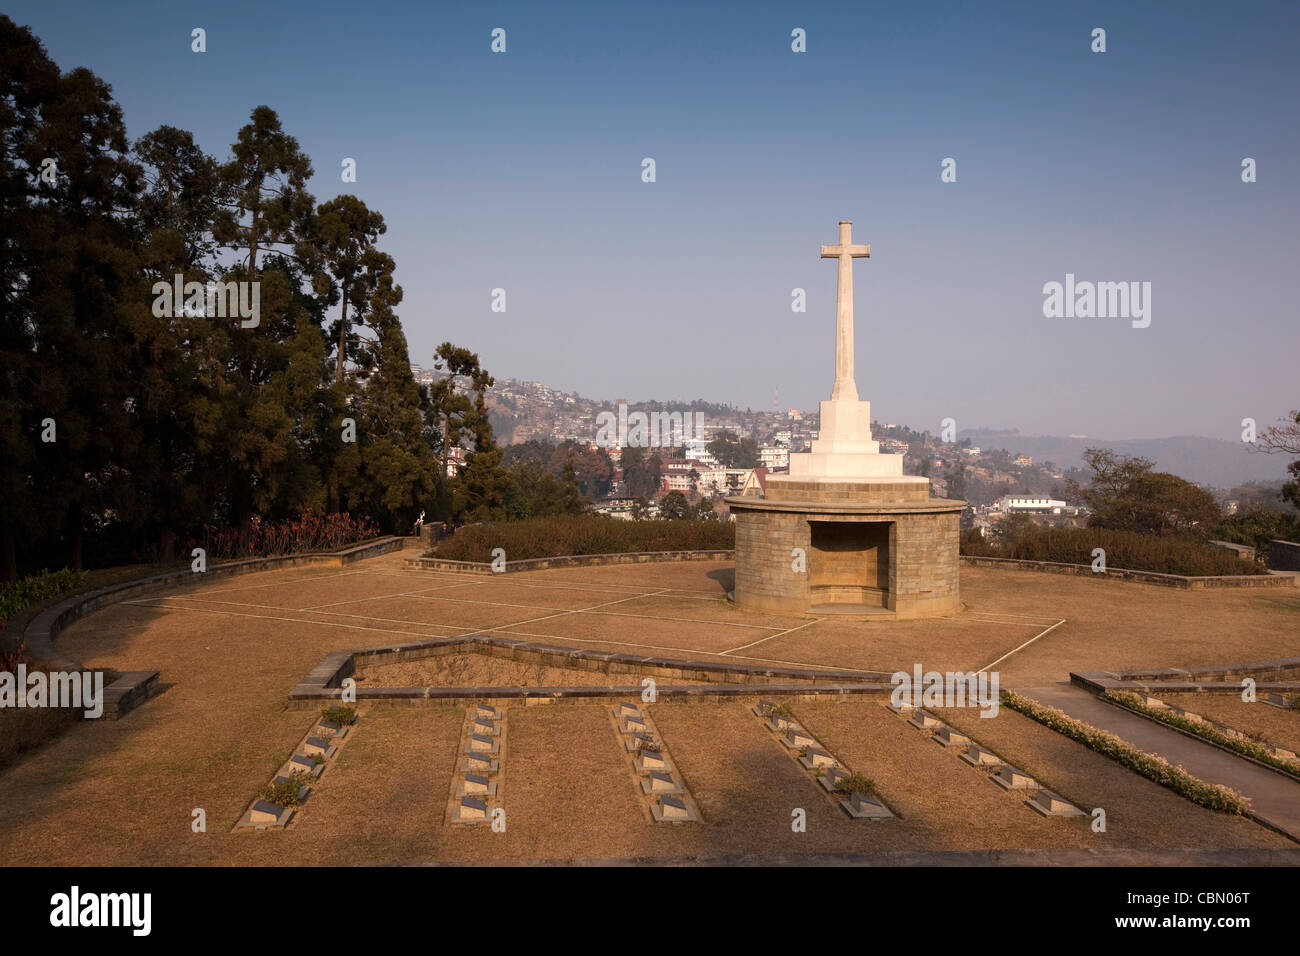 India Nagaland Kohima War Cemetery On Site Of Tennis Court Stock